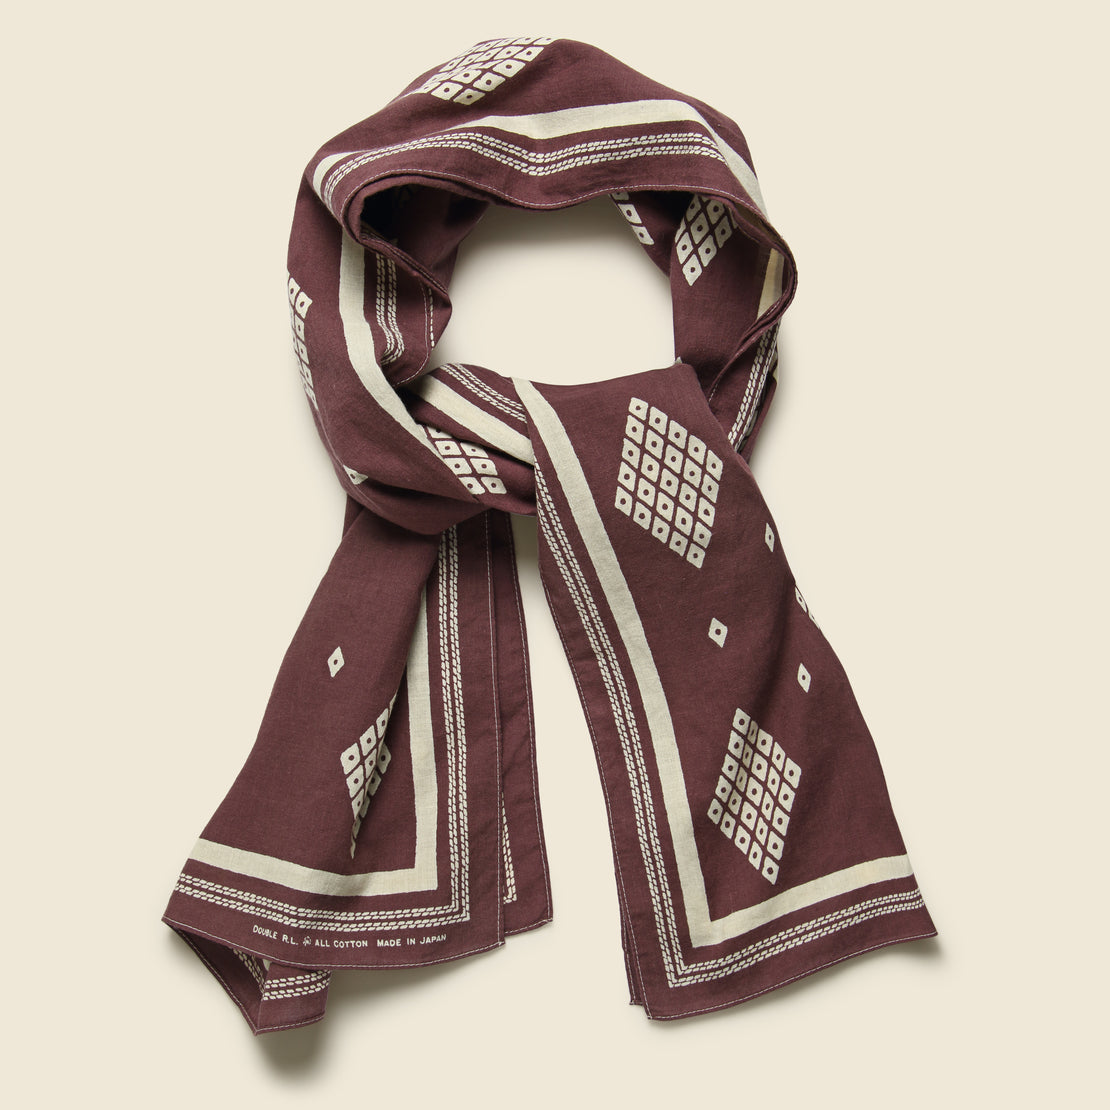 Bandana Scarf - Faded Burgundy/Cream